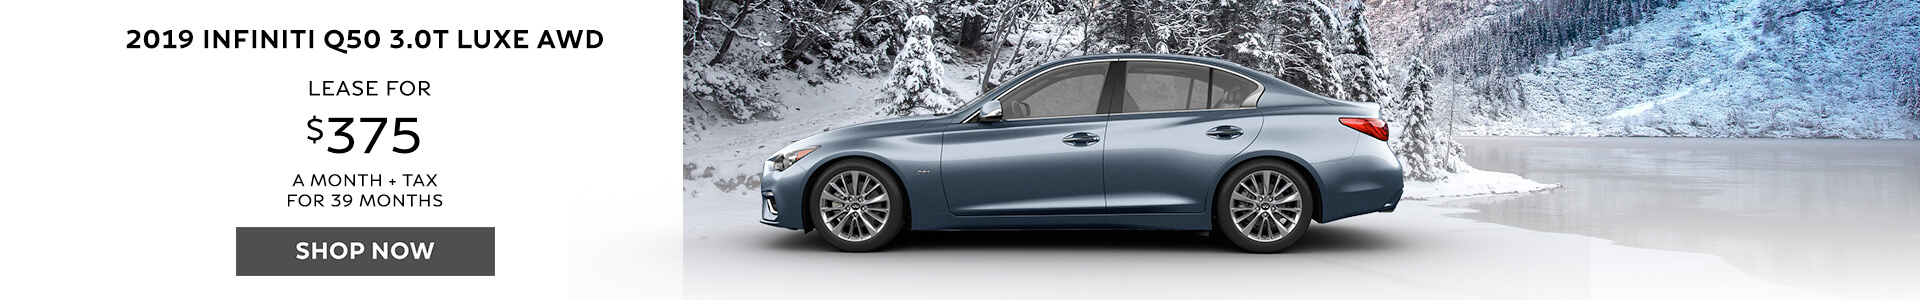 Q50 LUXE - Lease for $375